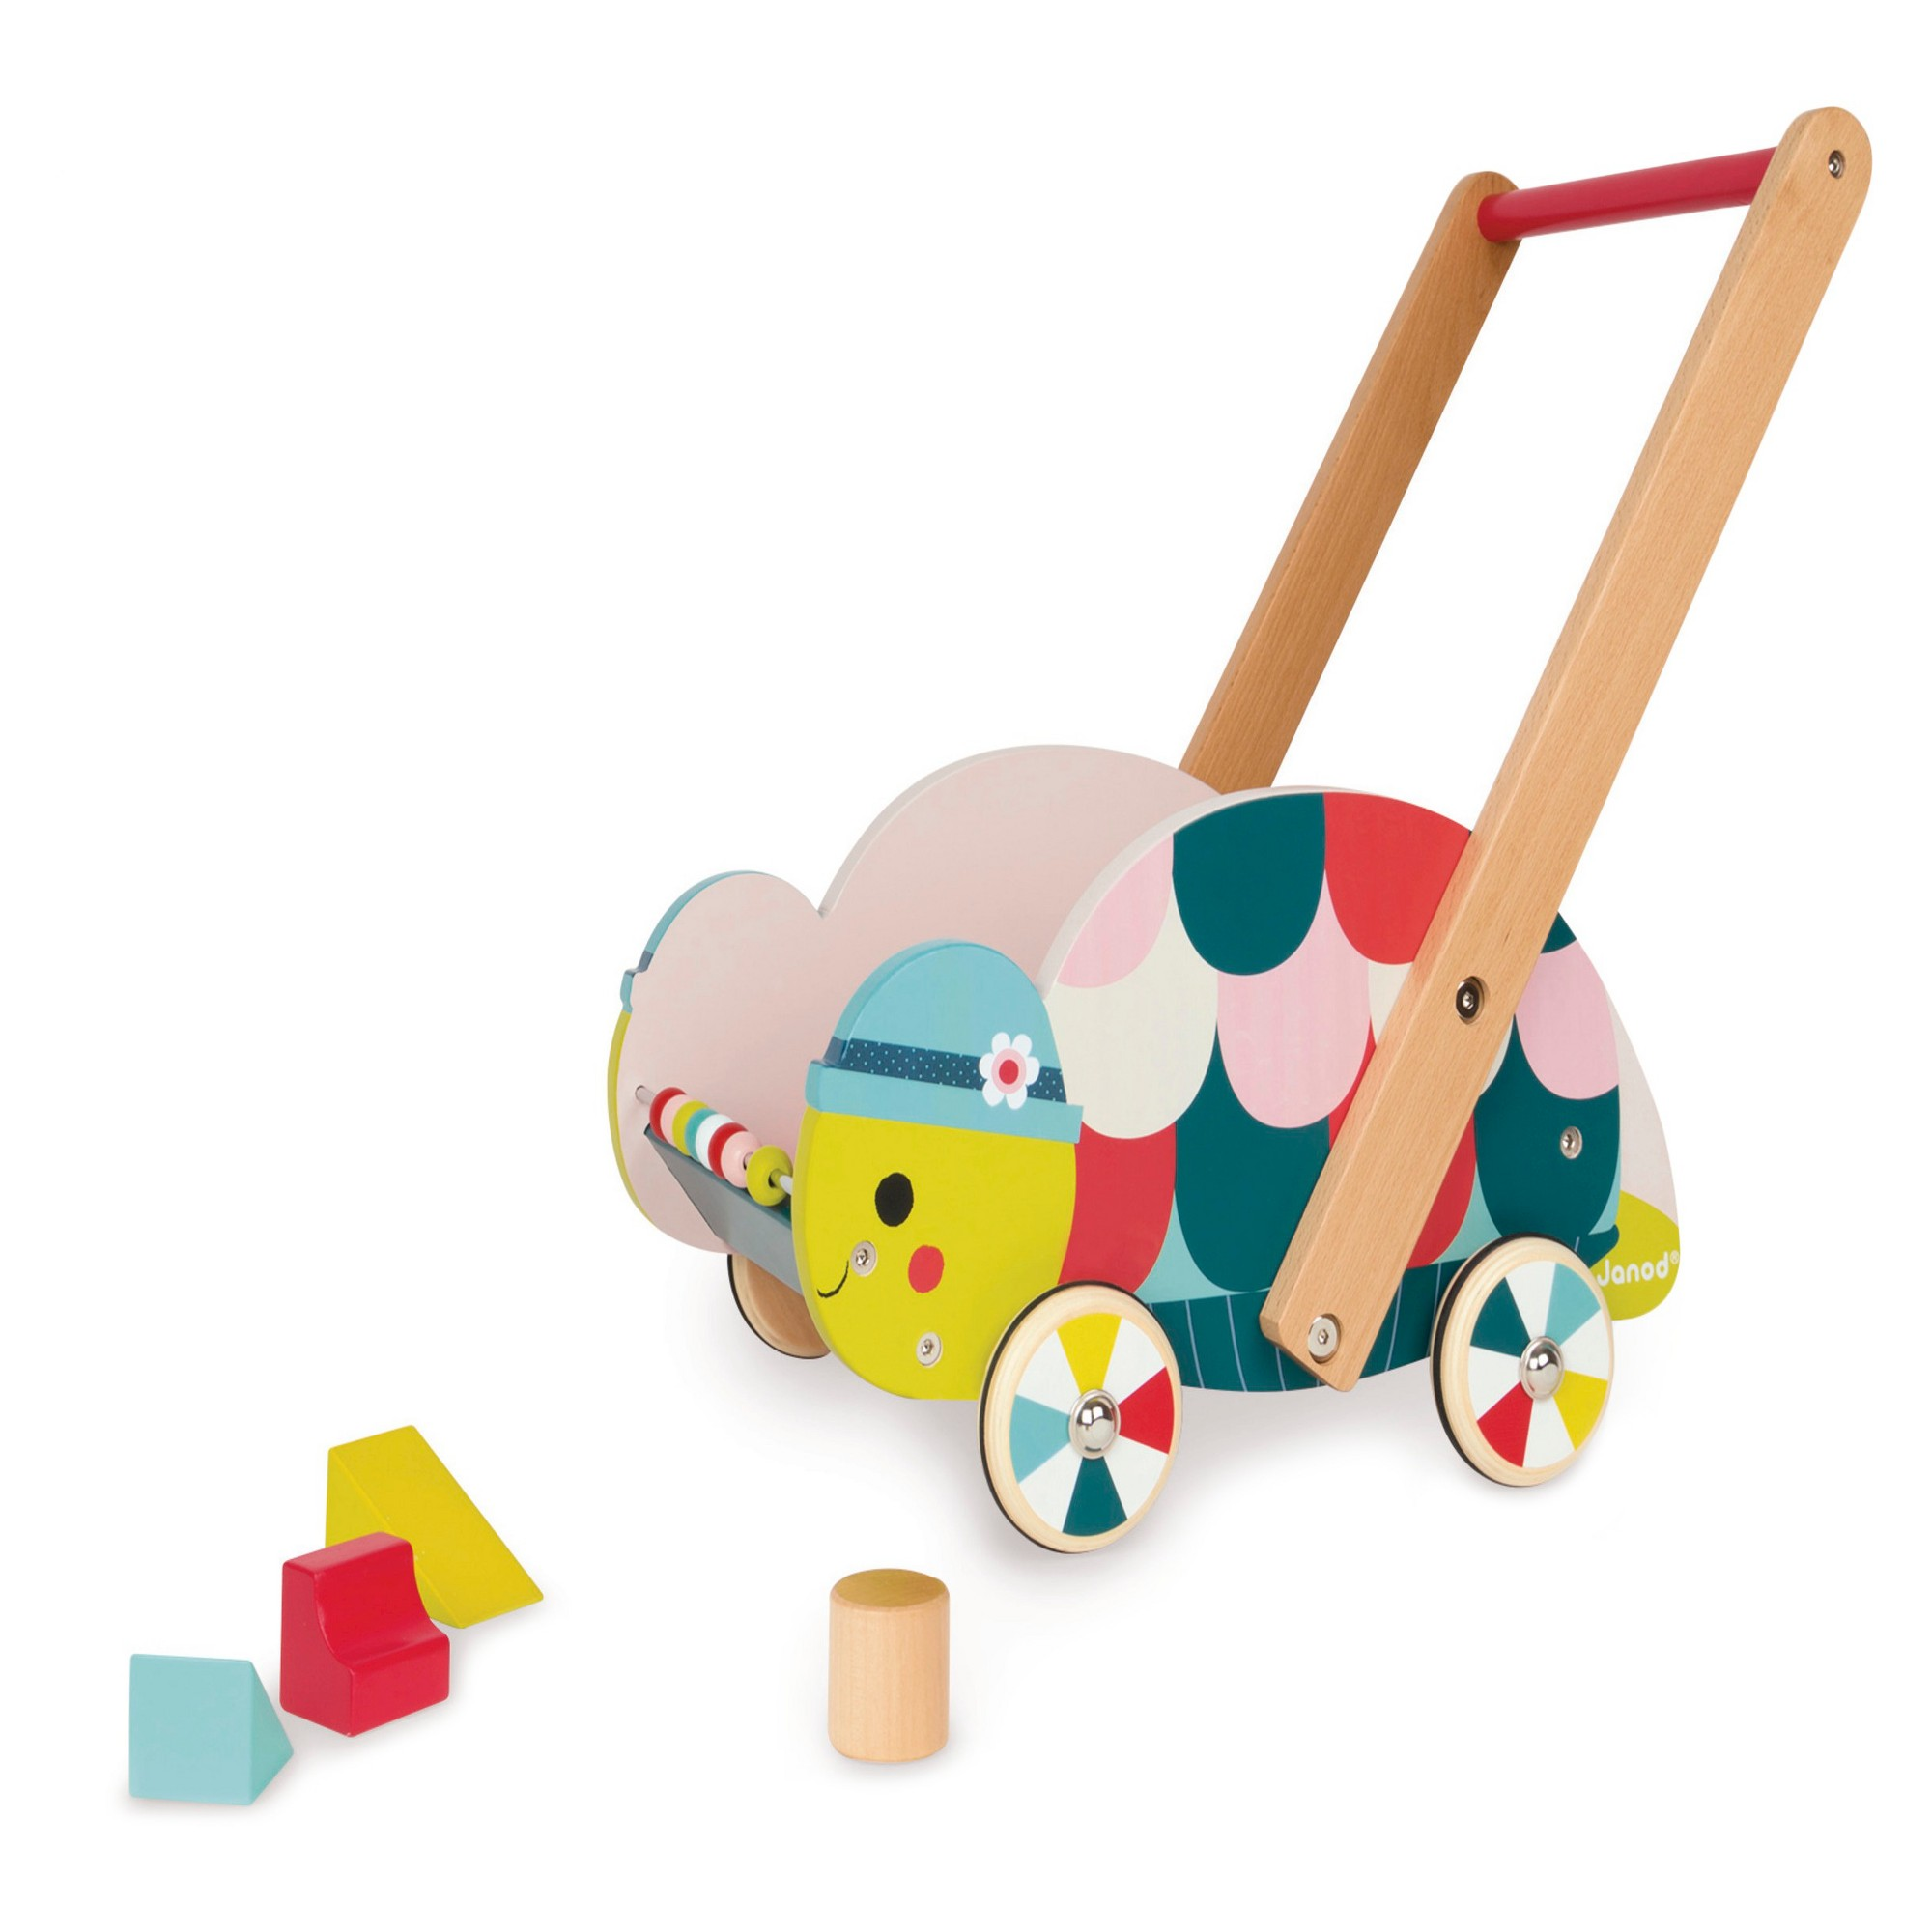 Janod Forest Turtle Trolley 12 Block | Toys, Wooden cart ...